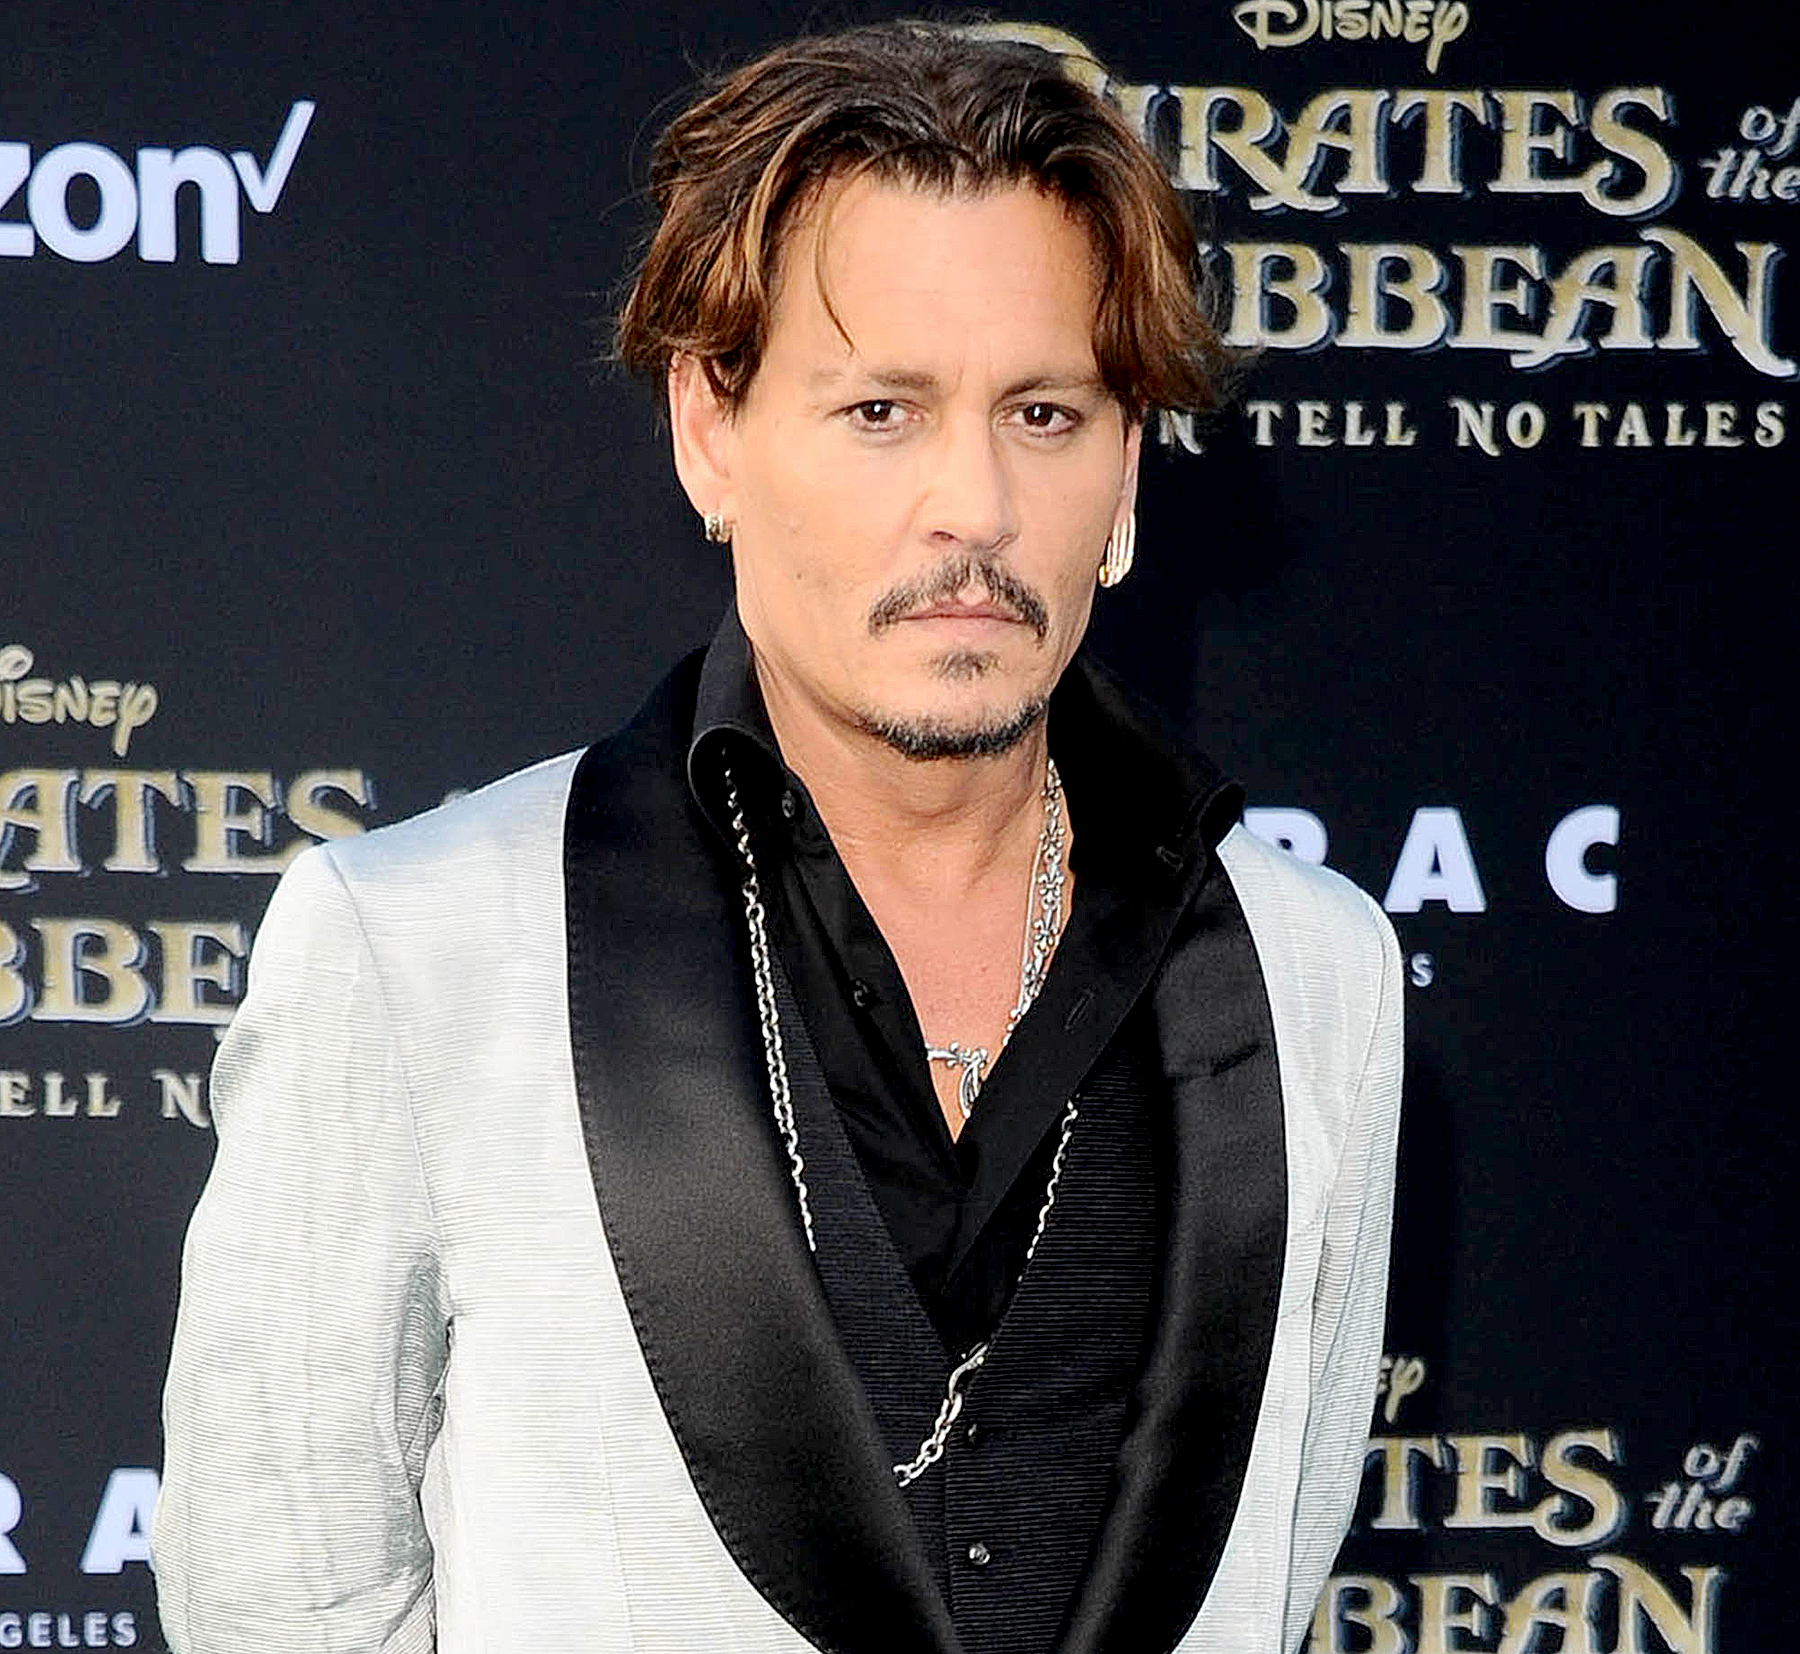 Johnny Depp Sued for Alleged Assault on 'City of Lies' Set